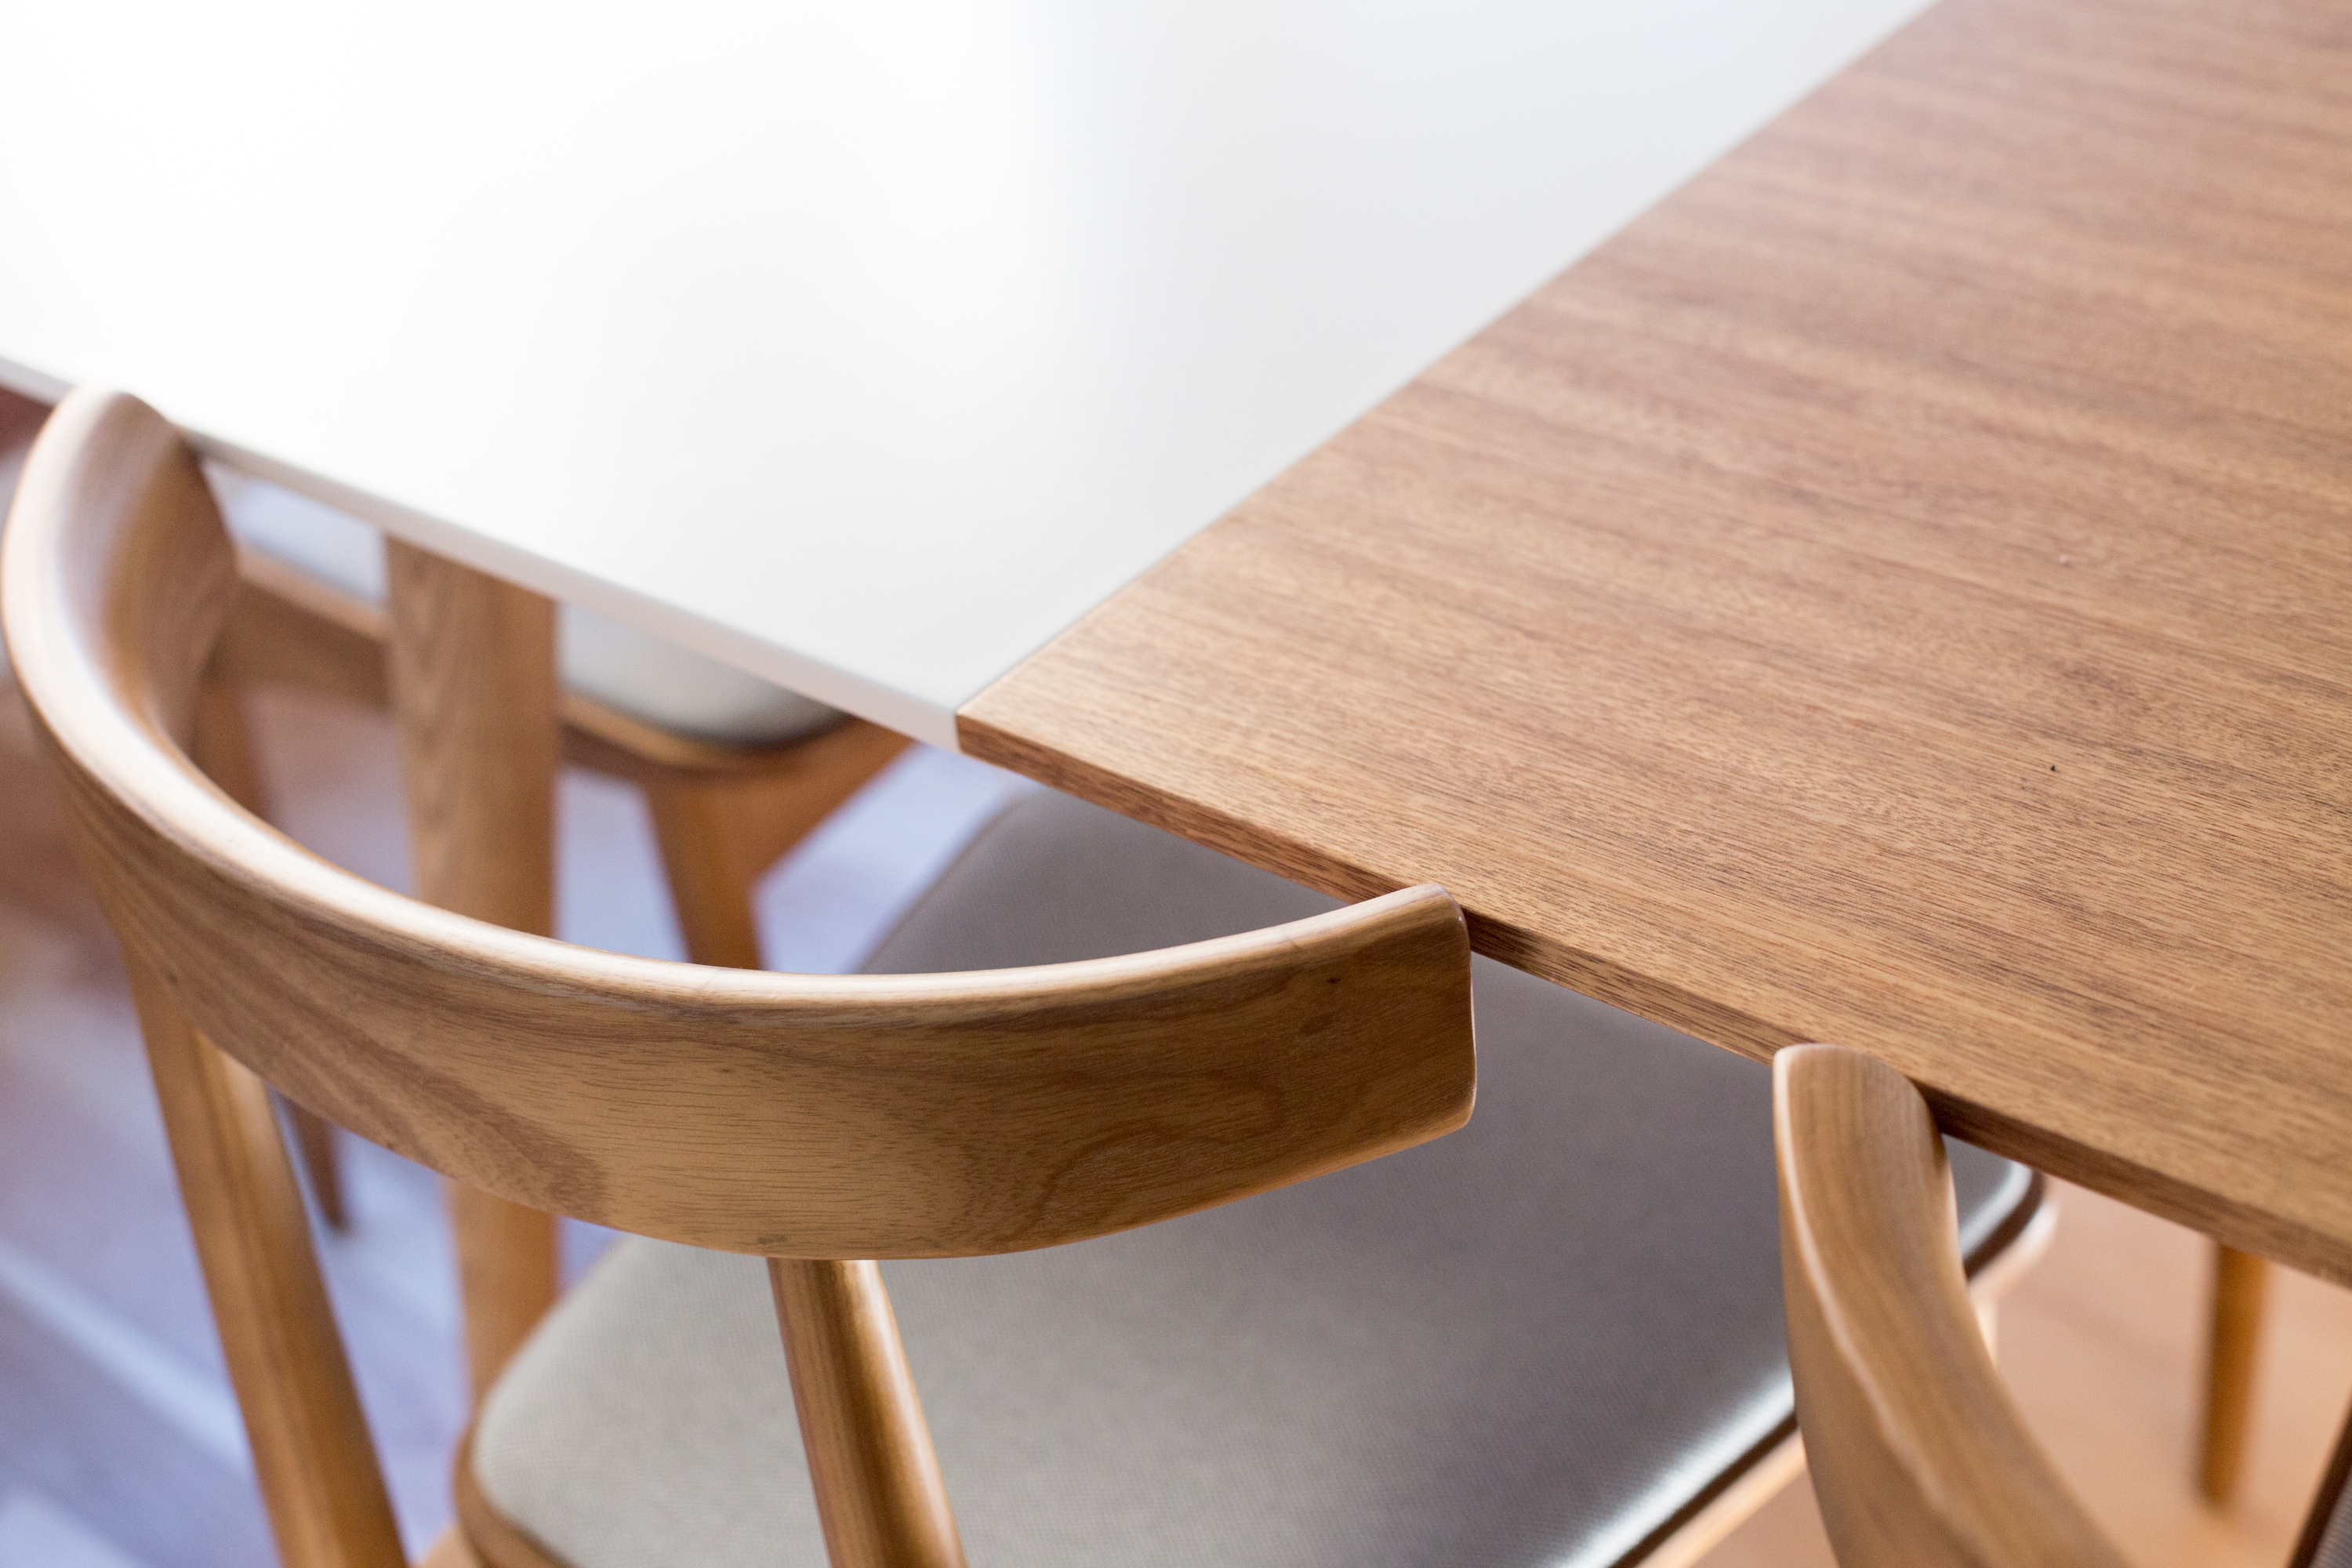 Popular Mid Century Modern Dining Table and Chairs Rove Concepts